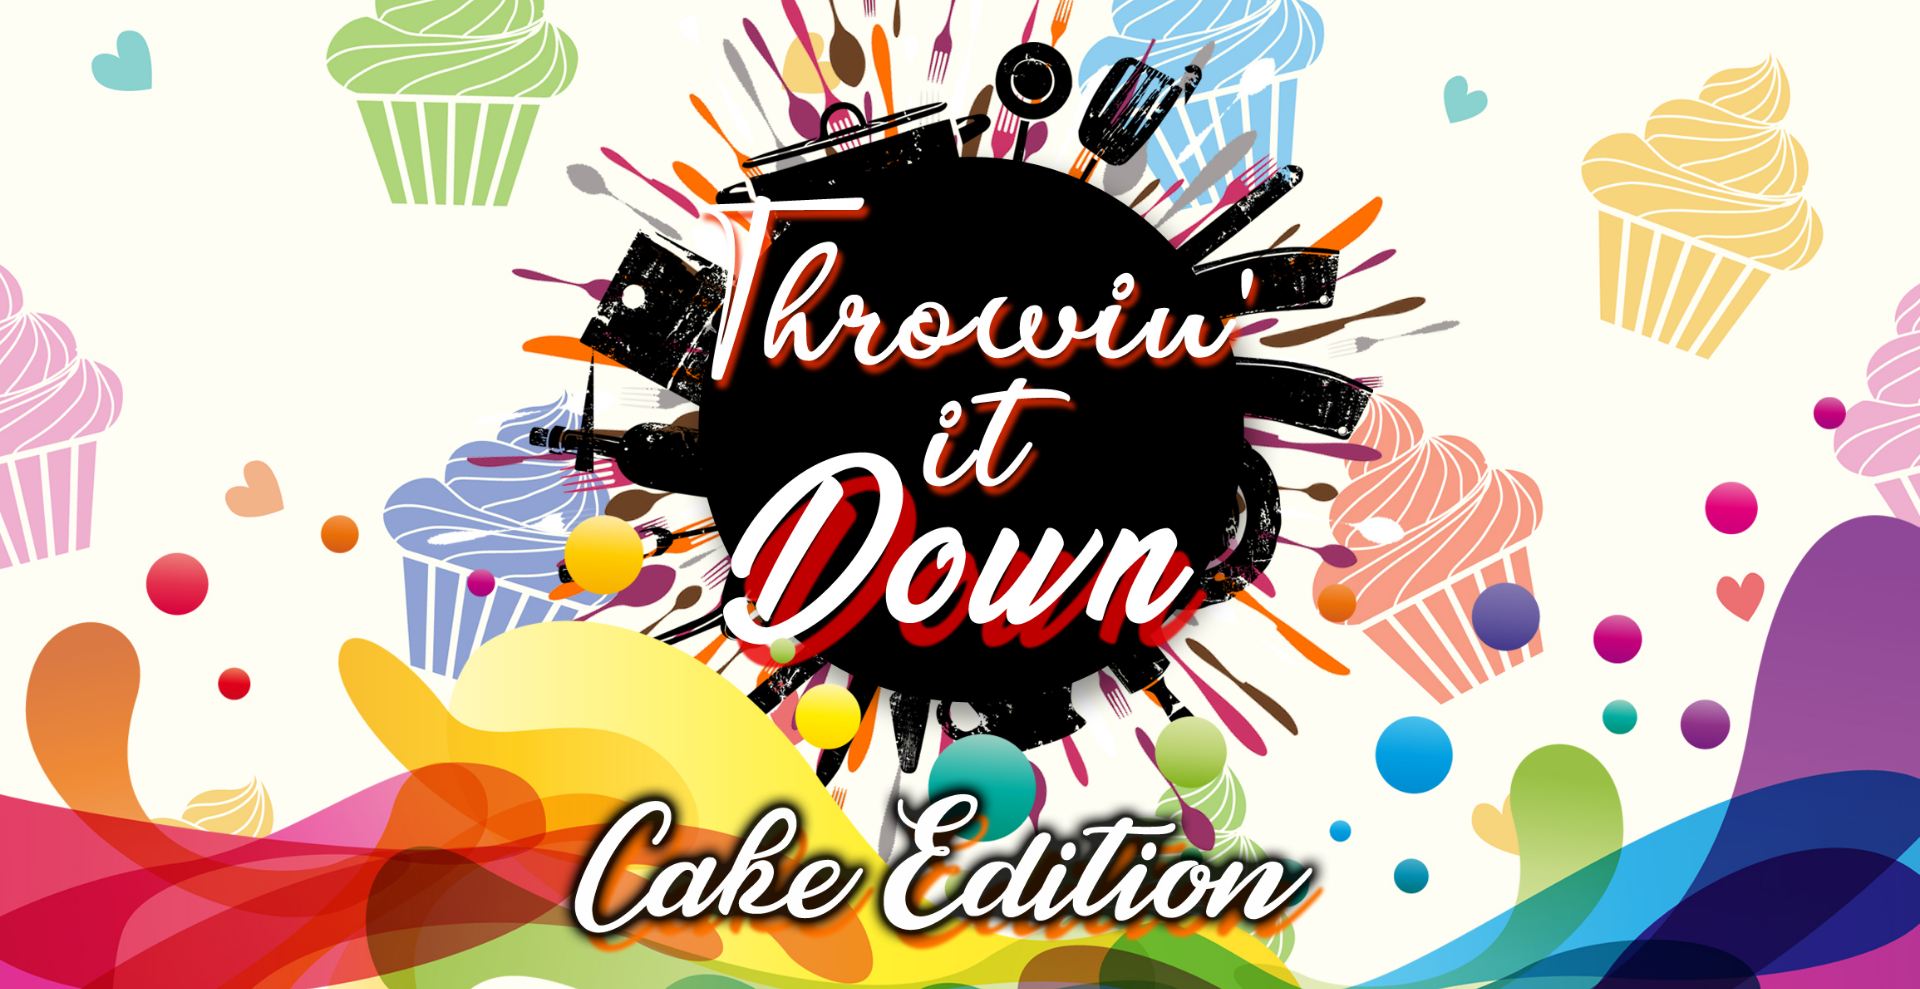 THROWIN' IT DOWN: CAKE EDITION